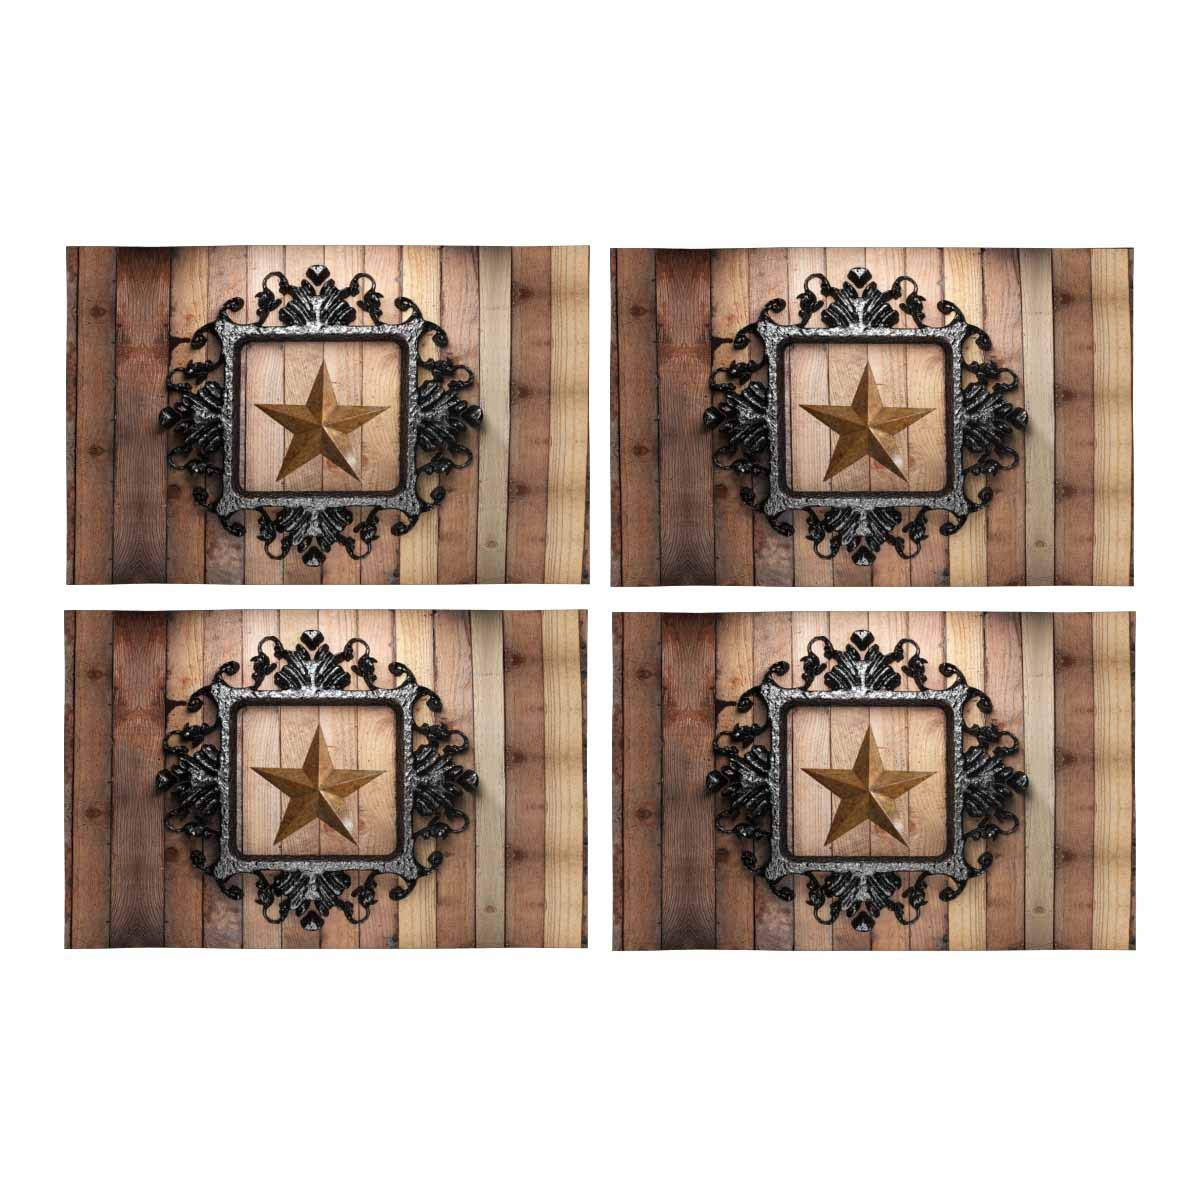 12x18 12x18 InterestPrint Western Texas Star in Wood Place Mats Heat-Resistant Placemats Stain Set of 6 Resistant Anti-Skid Washable Fabric Placemat Table Mats